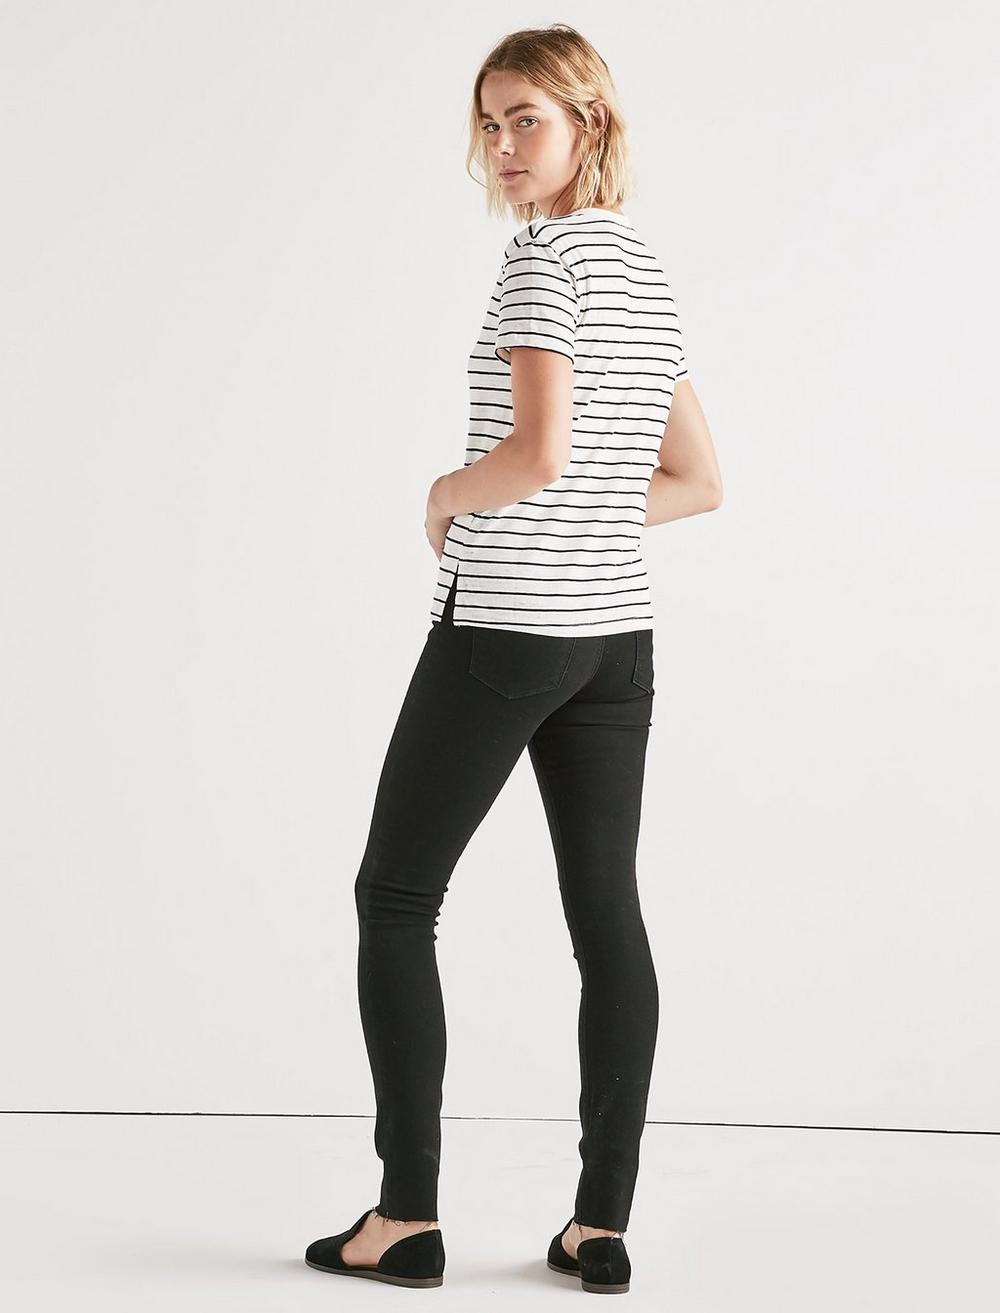 THE ANGELES V NECK STRIPED TEE., image 3